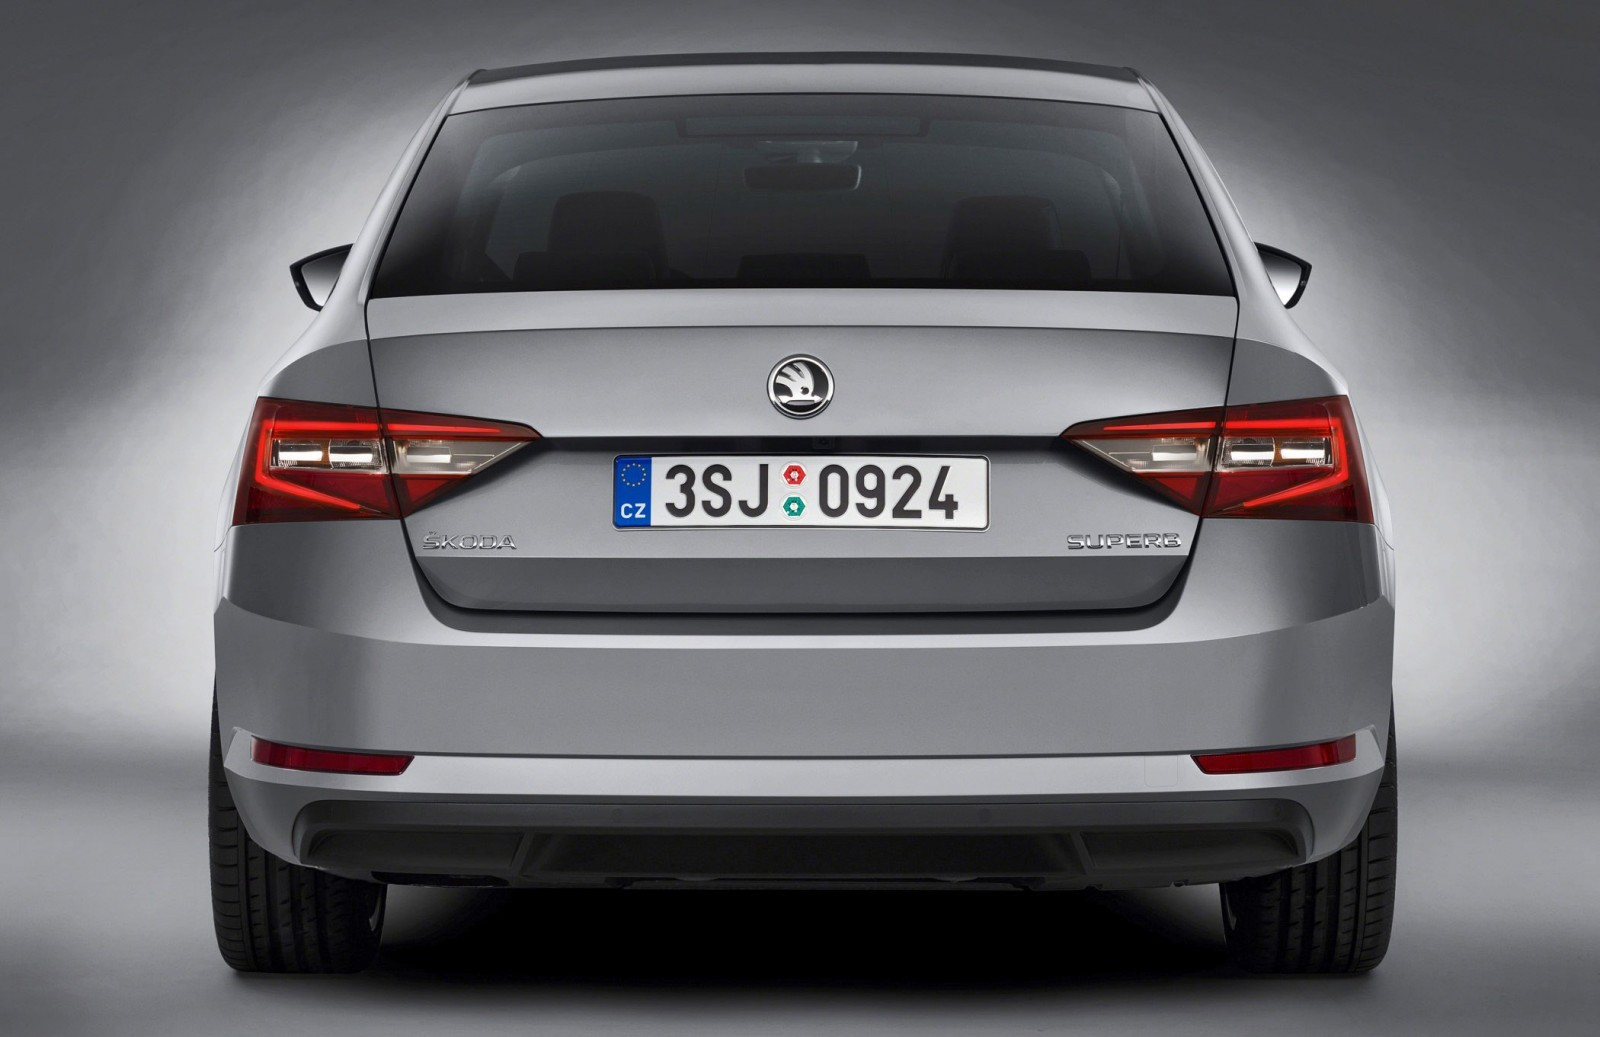 2016 Skoda Superb 7 copy